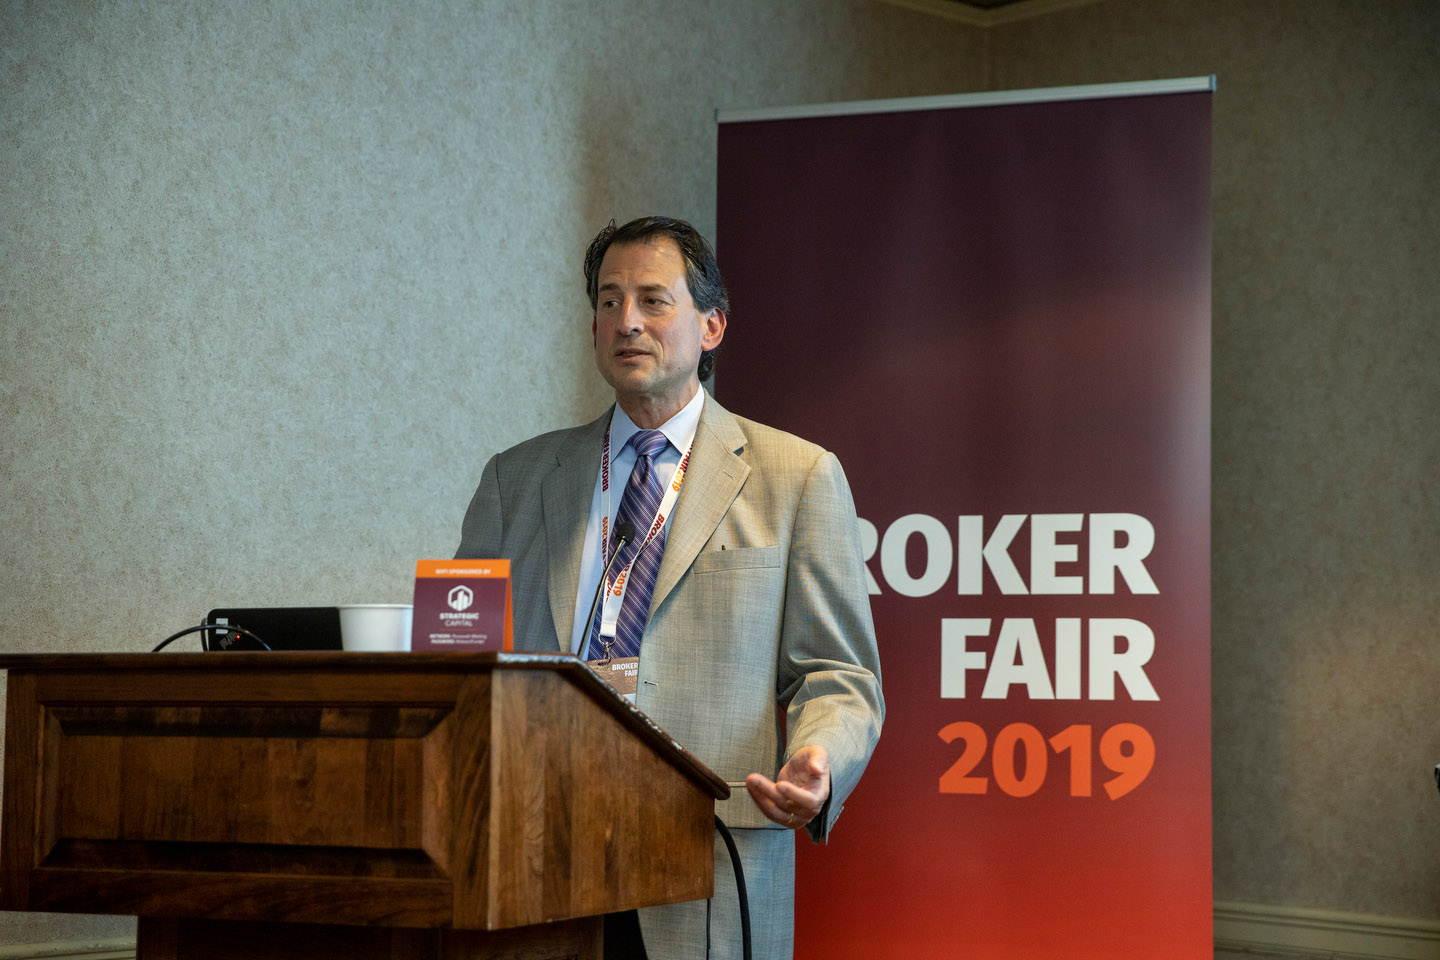 Broker Fair 2019 - Presented by deBanked - 242